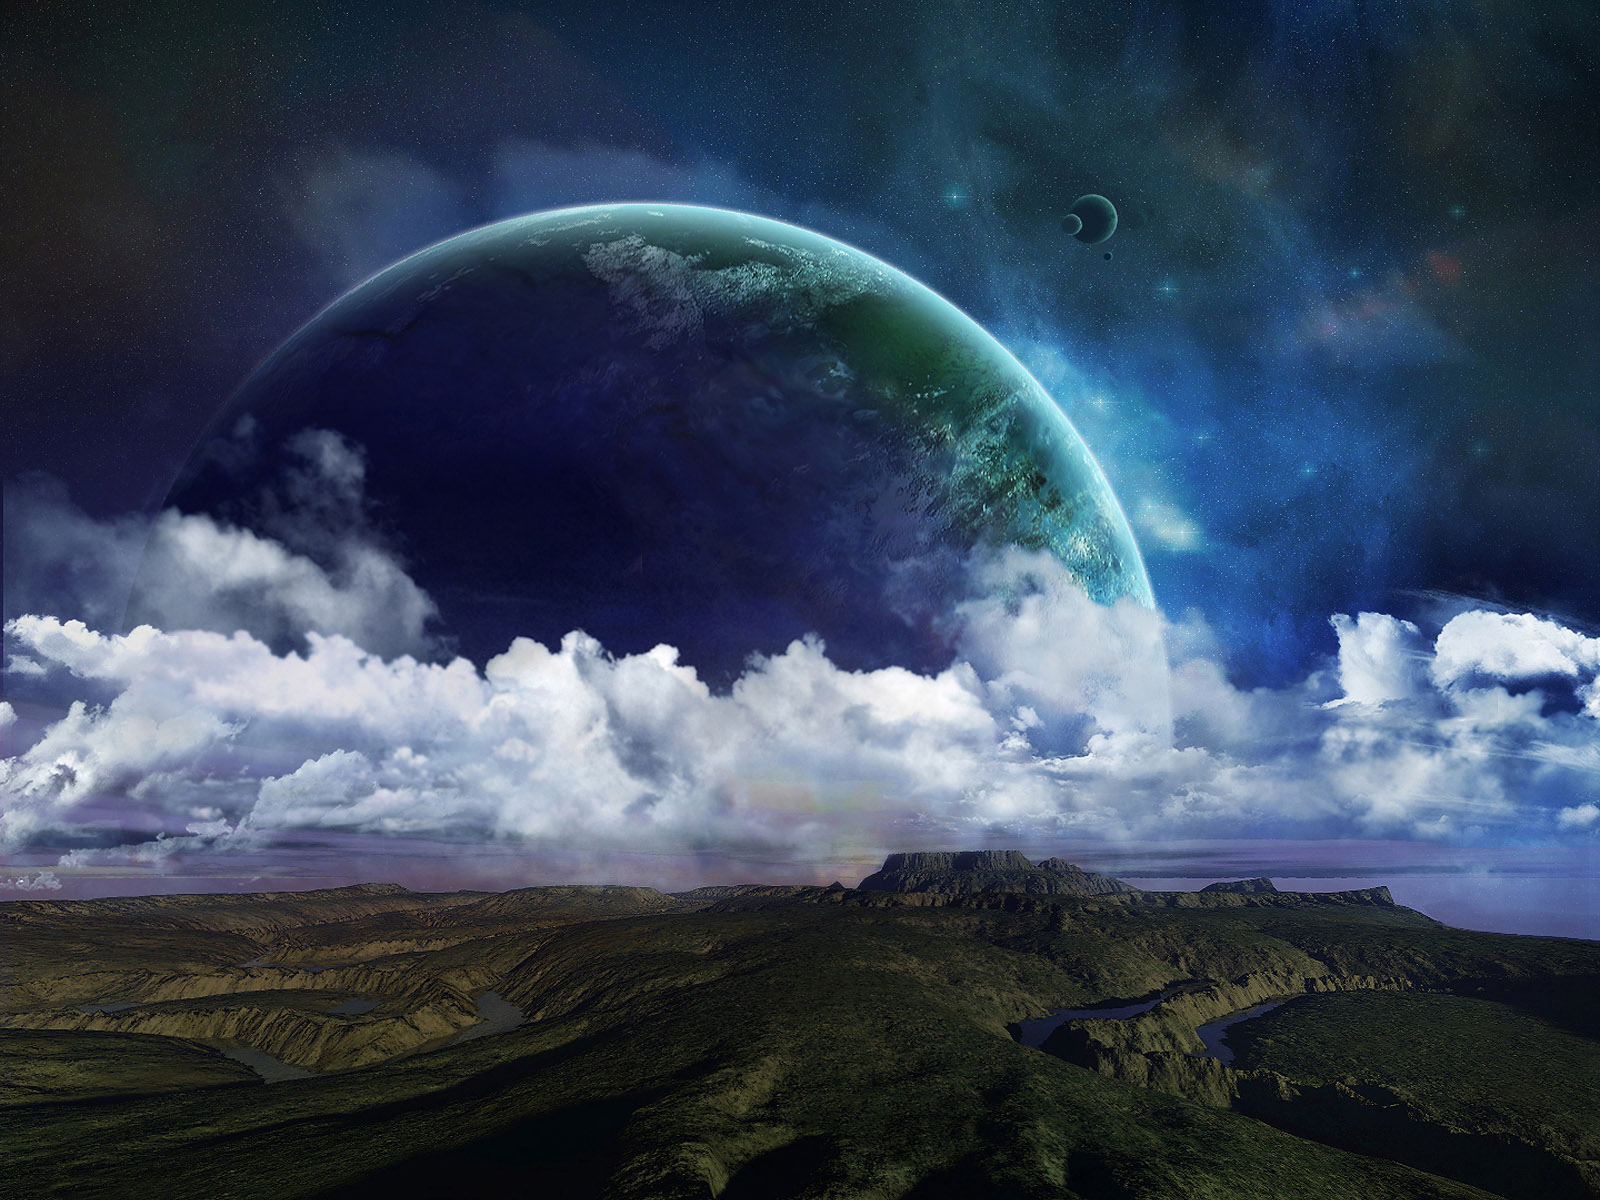 Outer Space Desktop Wallpaper: Nature's Best: Outer Space Wallpapers